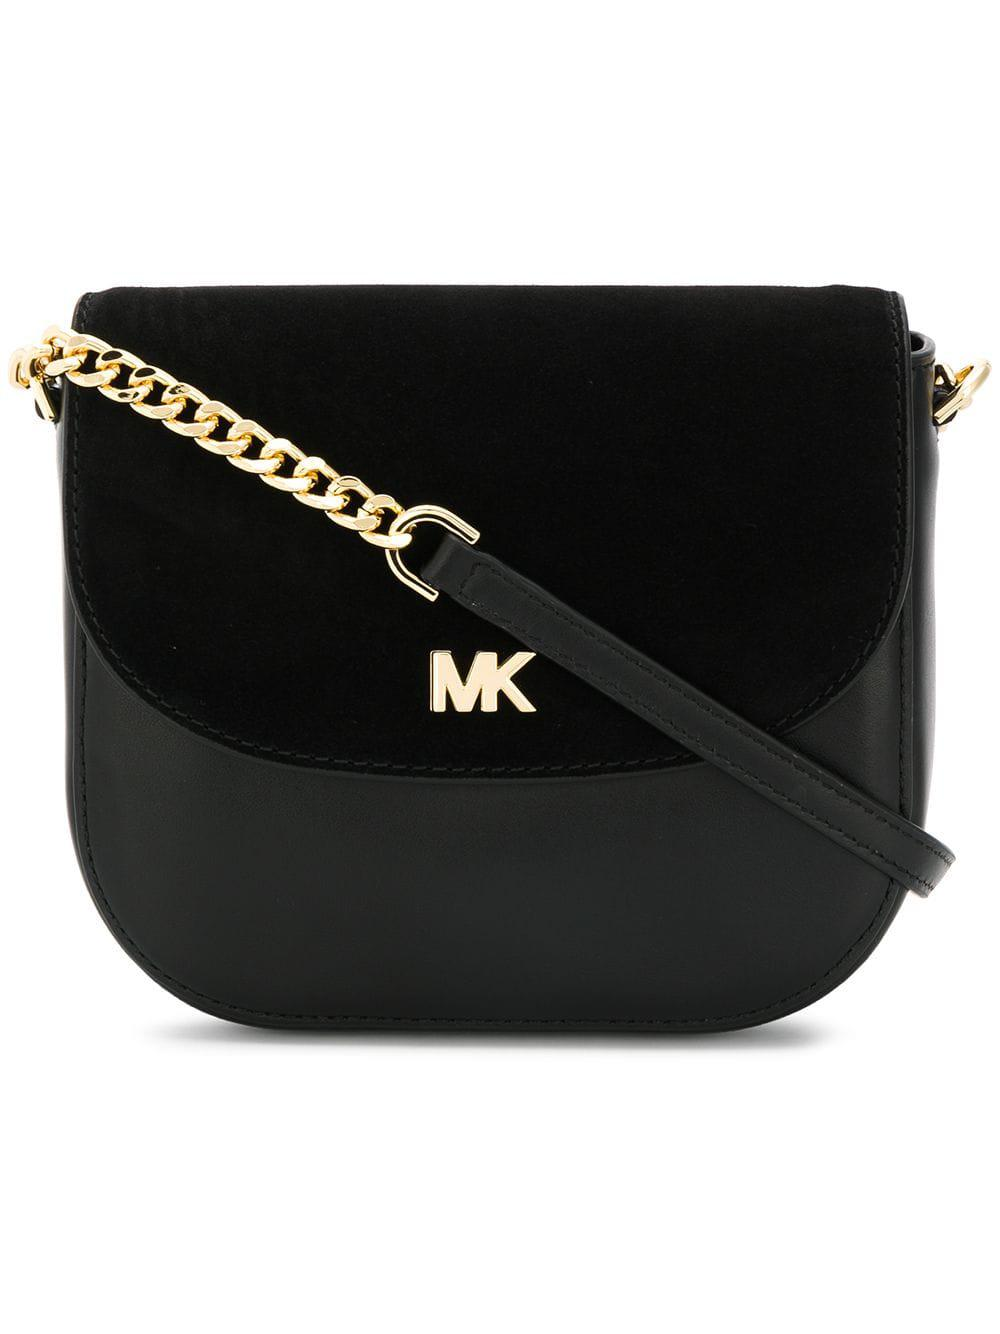 dca3bf16fd41 Michael Michael Kors Leather Crossbody Bag in Black - Lyst